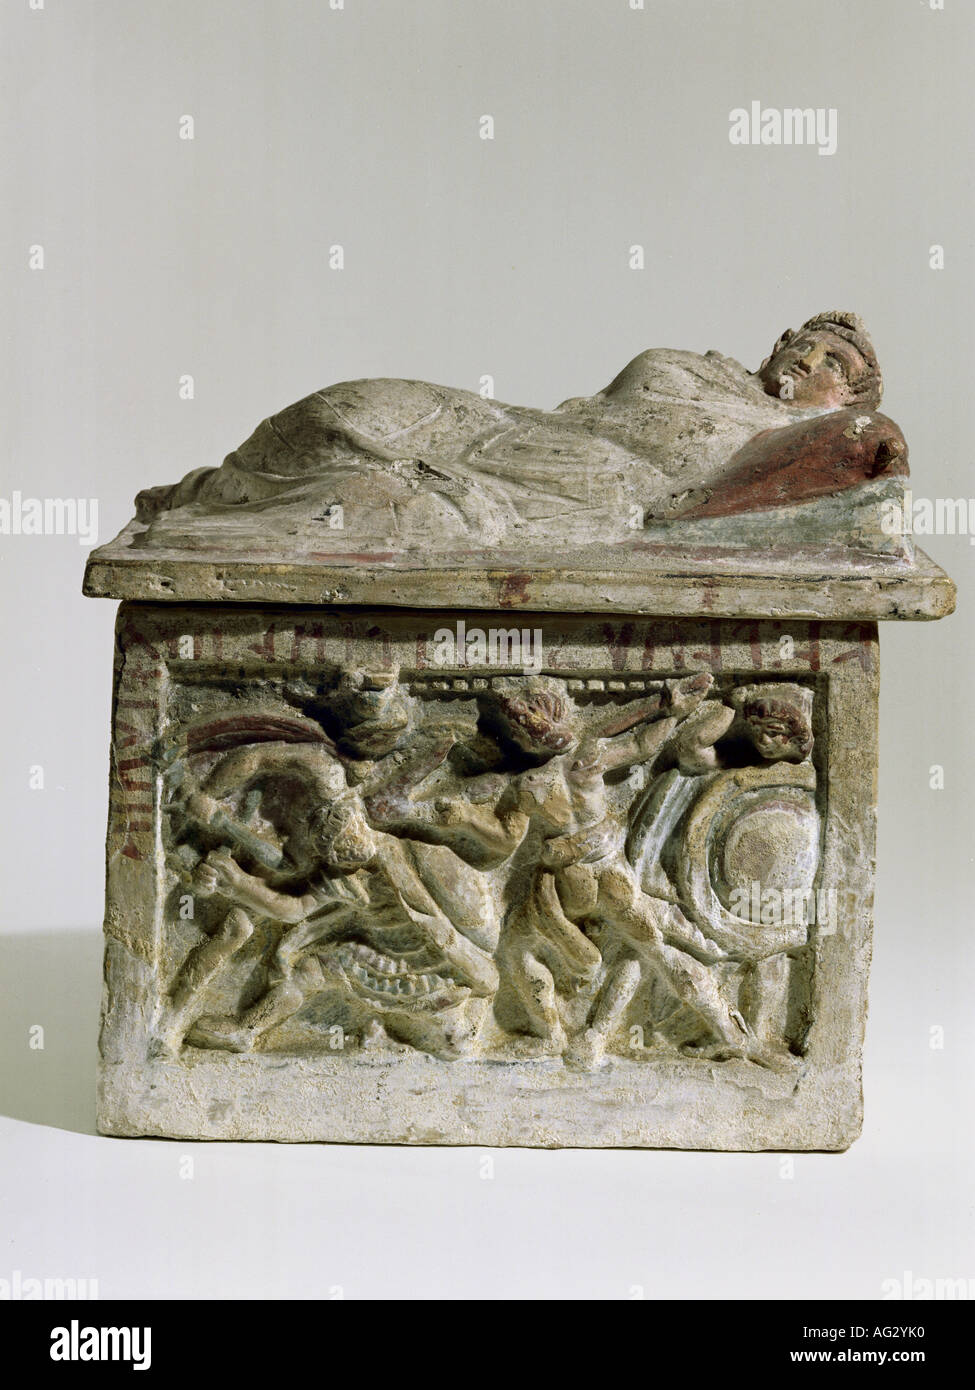 fine arts, Ancient World, Etruria, ash urn, 3th century, clay, Kestner-Museum, Hanover, Germany, Artist's Copyright has not to be cleared - Stock Image